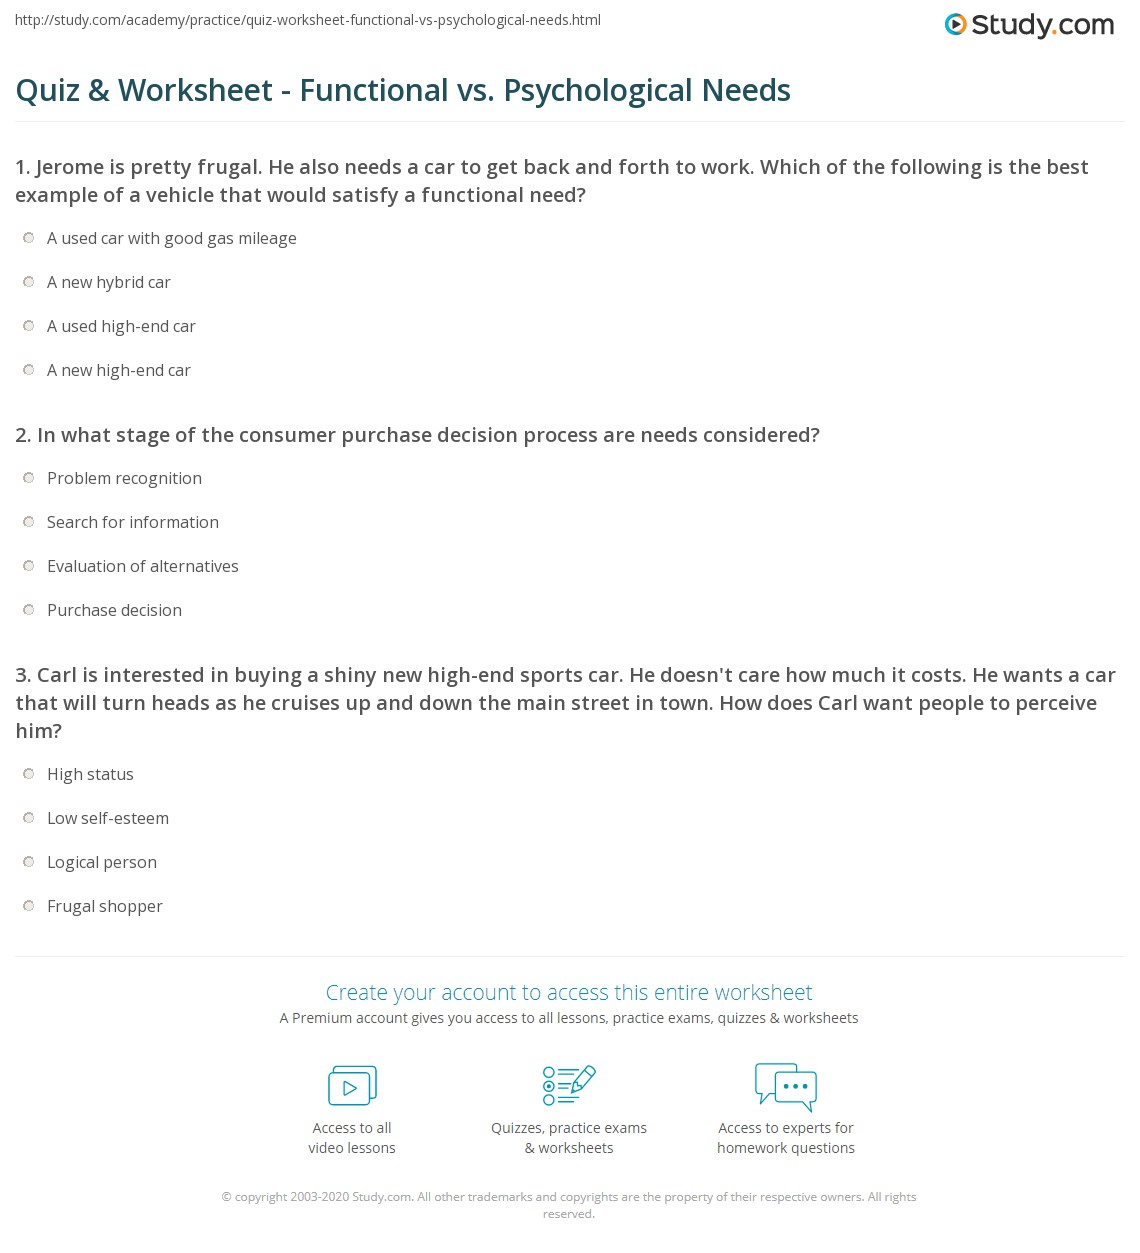 """issues in psychological testing worksheet Hogan (2007), """"ethics deals with what one should or should not do, according to principles or norms of conduct"""" (p 584) consent and confidentiality are two particular ethical issues associated with psychological testing in regard to informed consent, it is a significant aspect of psychological testing."""